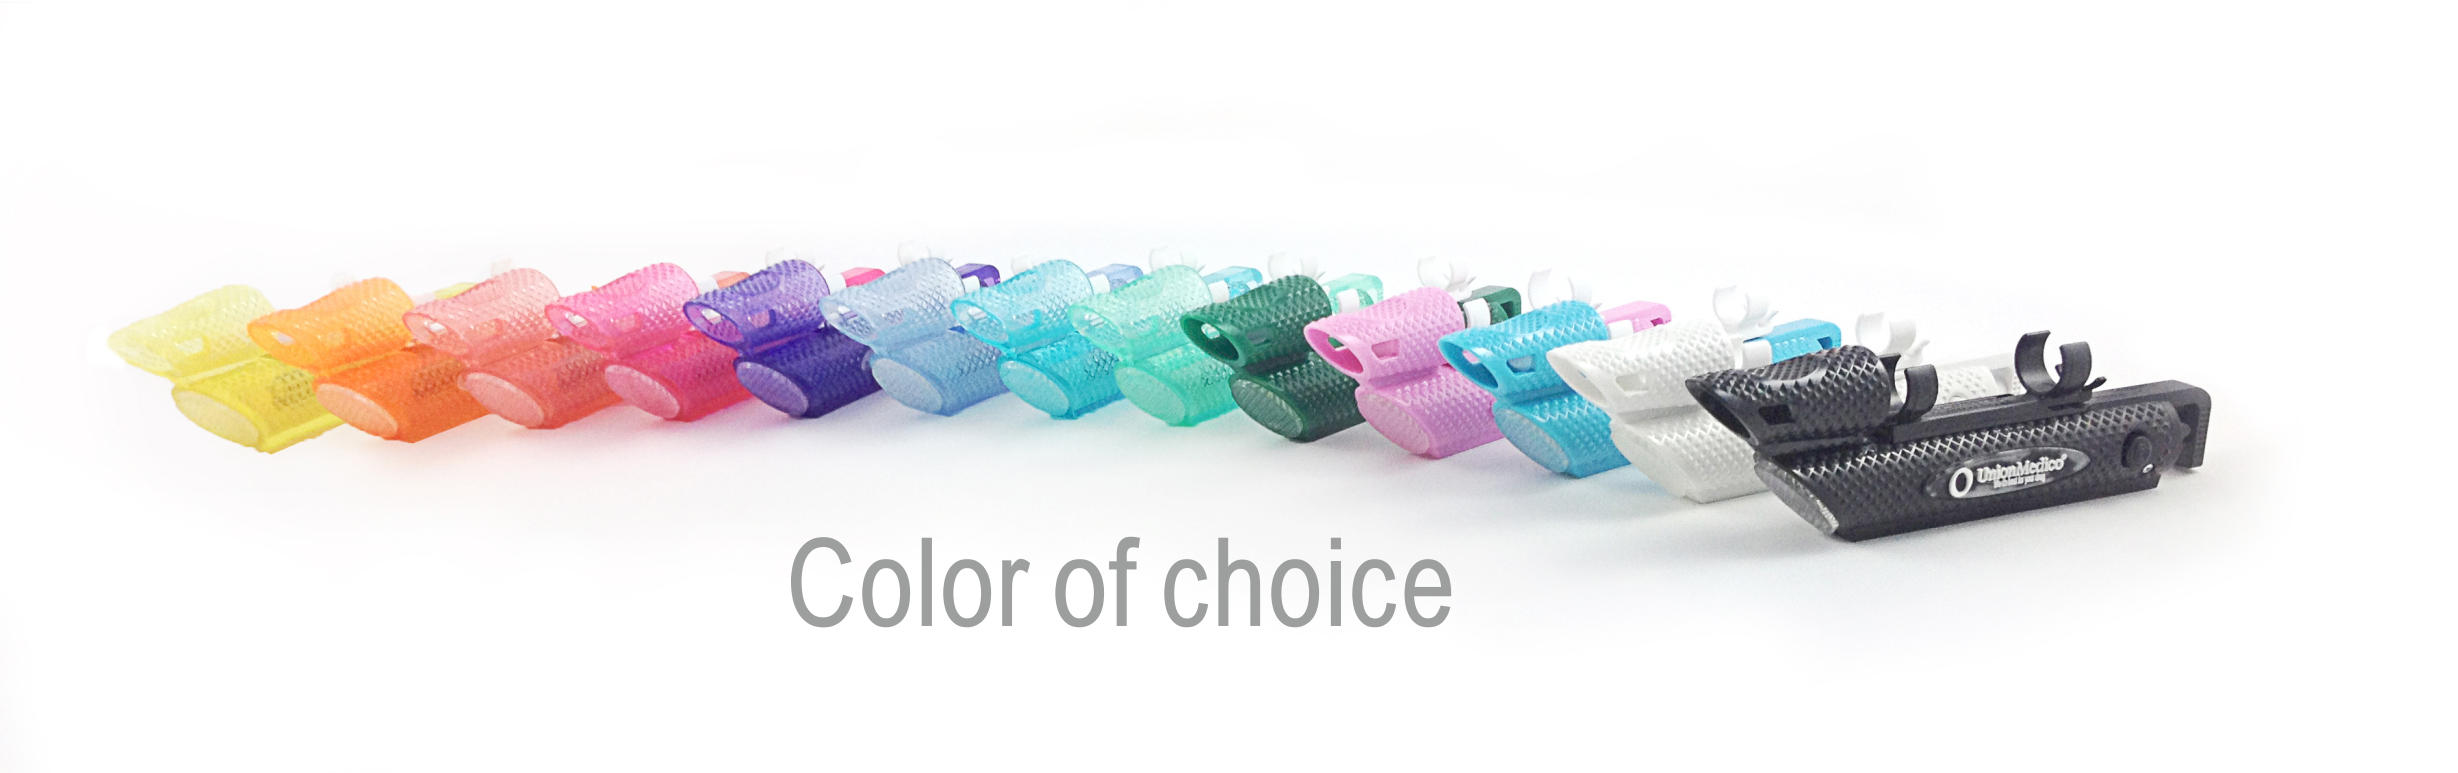 color-of-choice